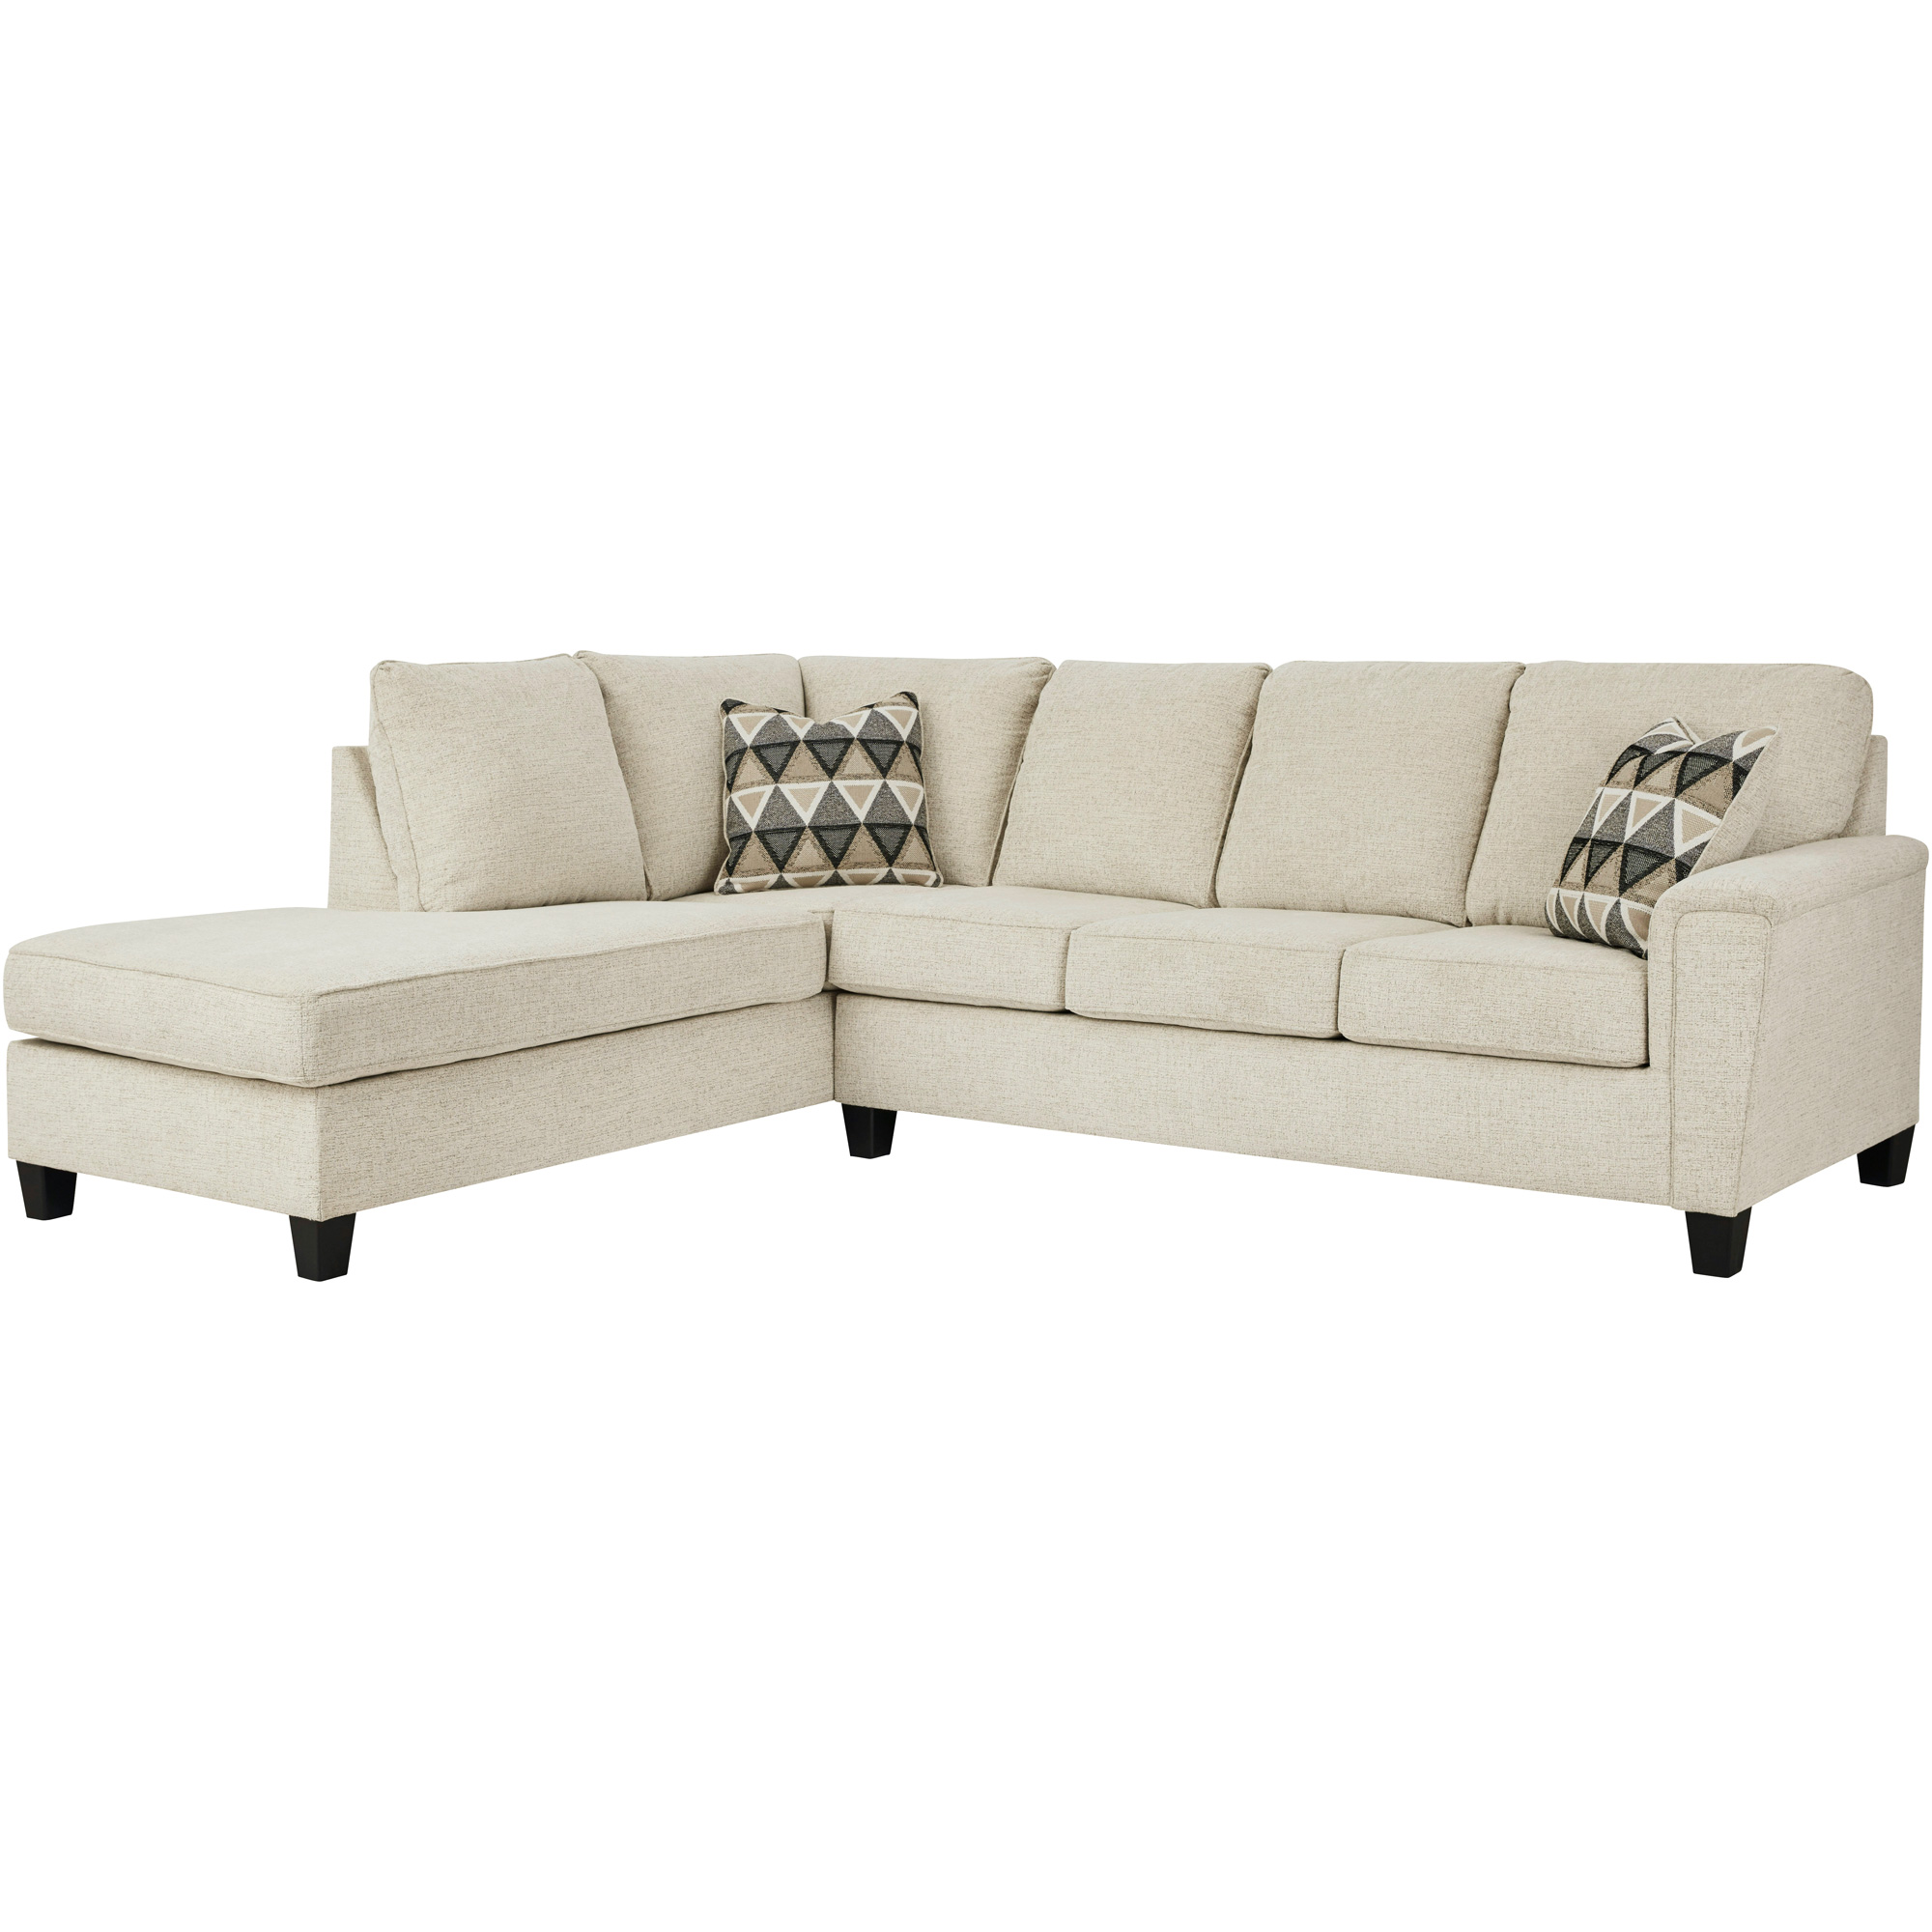 Ashley Furniture | Abinger Natural Left Chaise Sectional Sofa